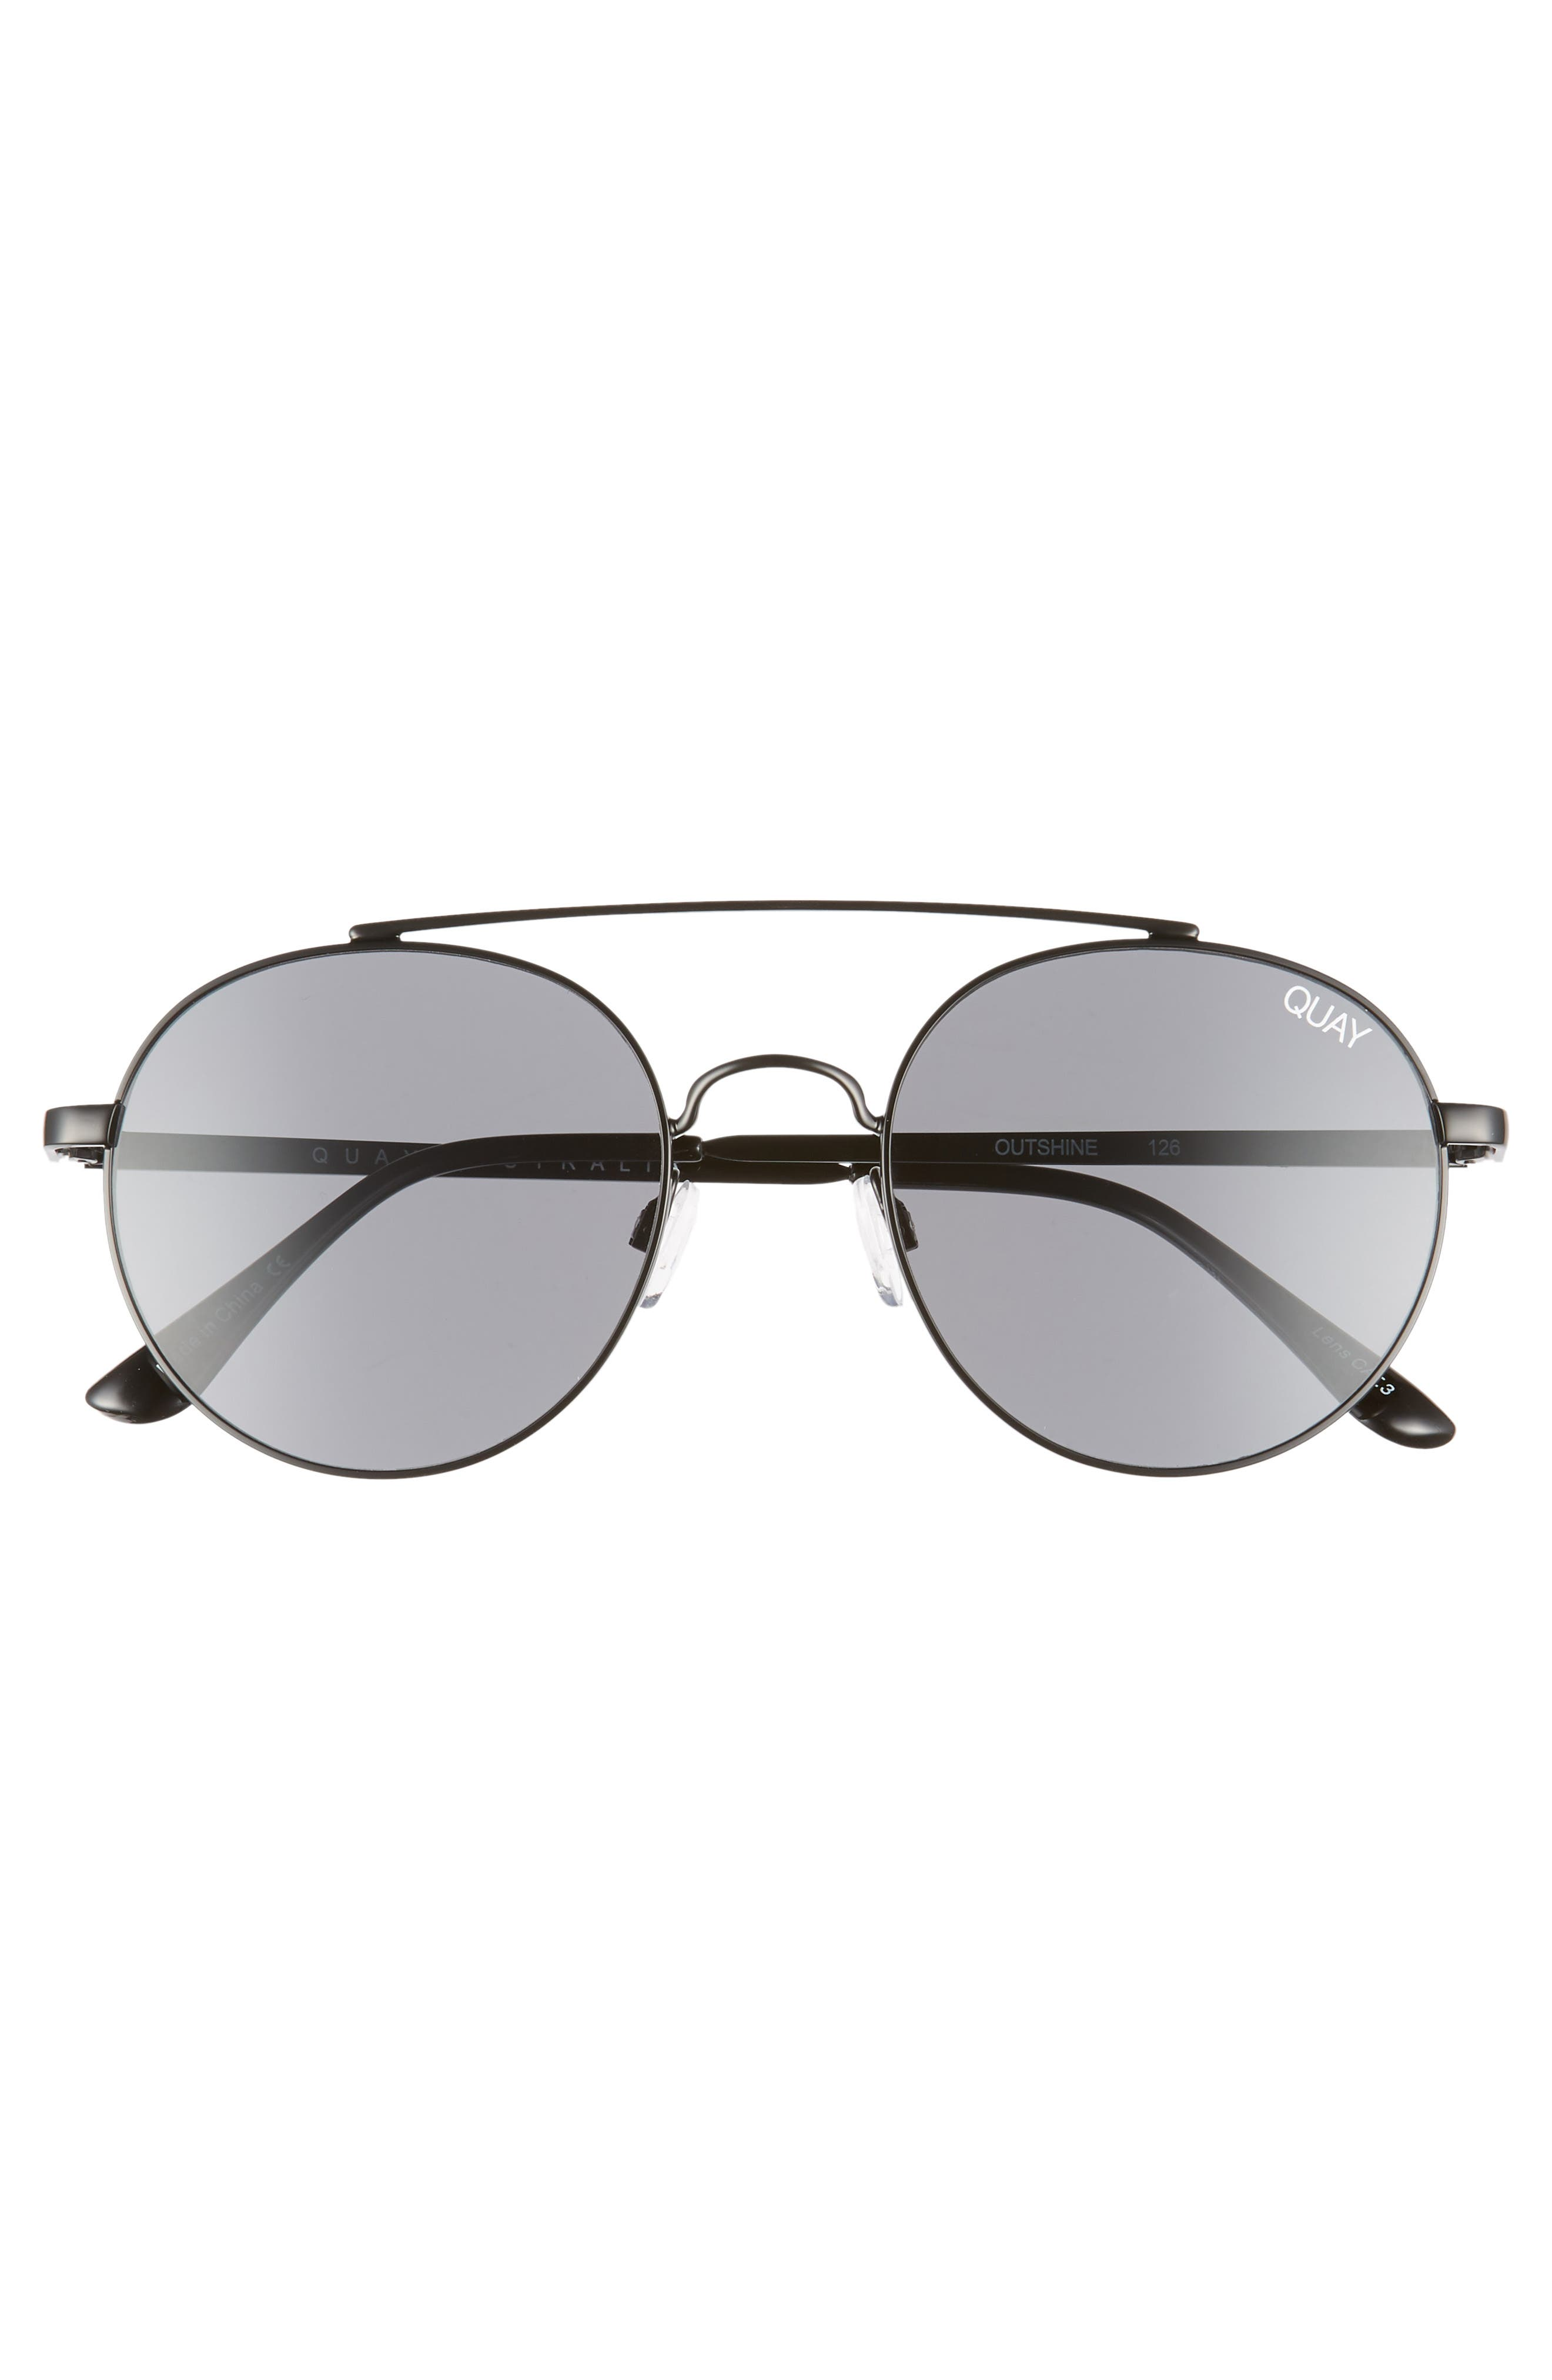 Outshine 53mm Round Sunglasses,                             Alternate thumbnail 3, color,                             BLACK / SMOKE